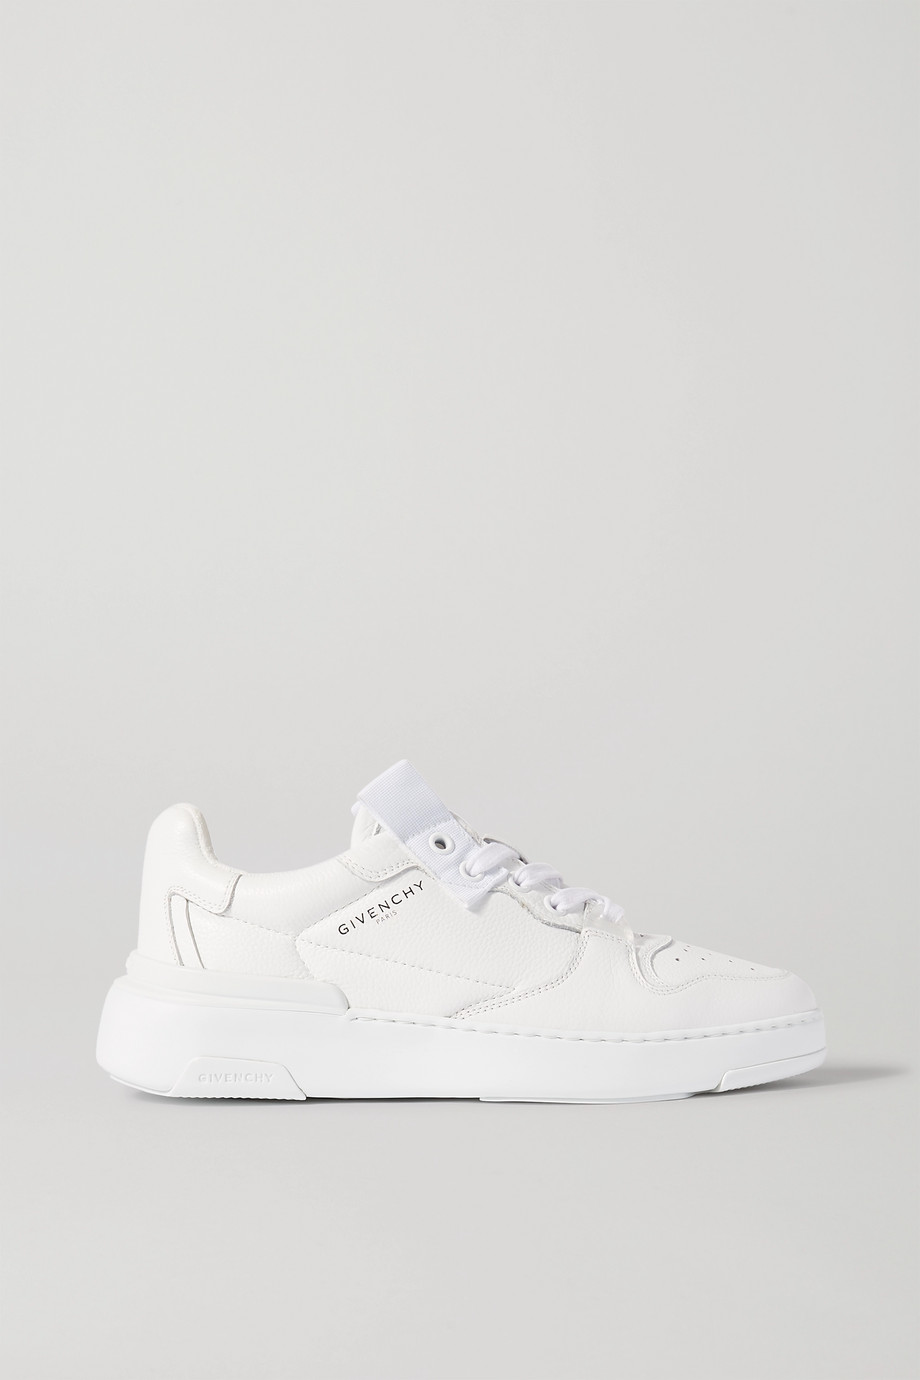 GIVENCHY Wing leather sneakers